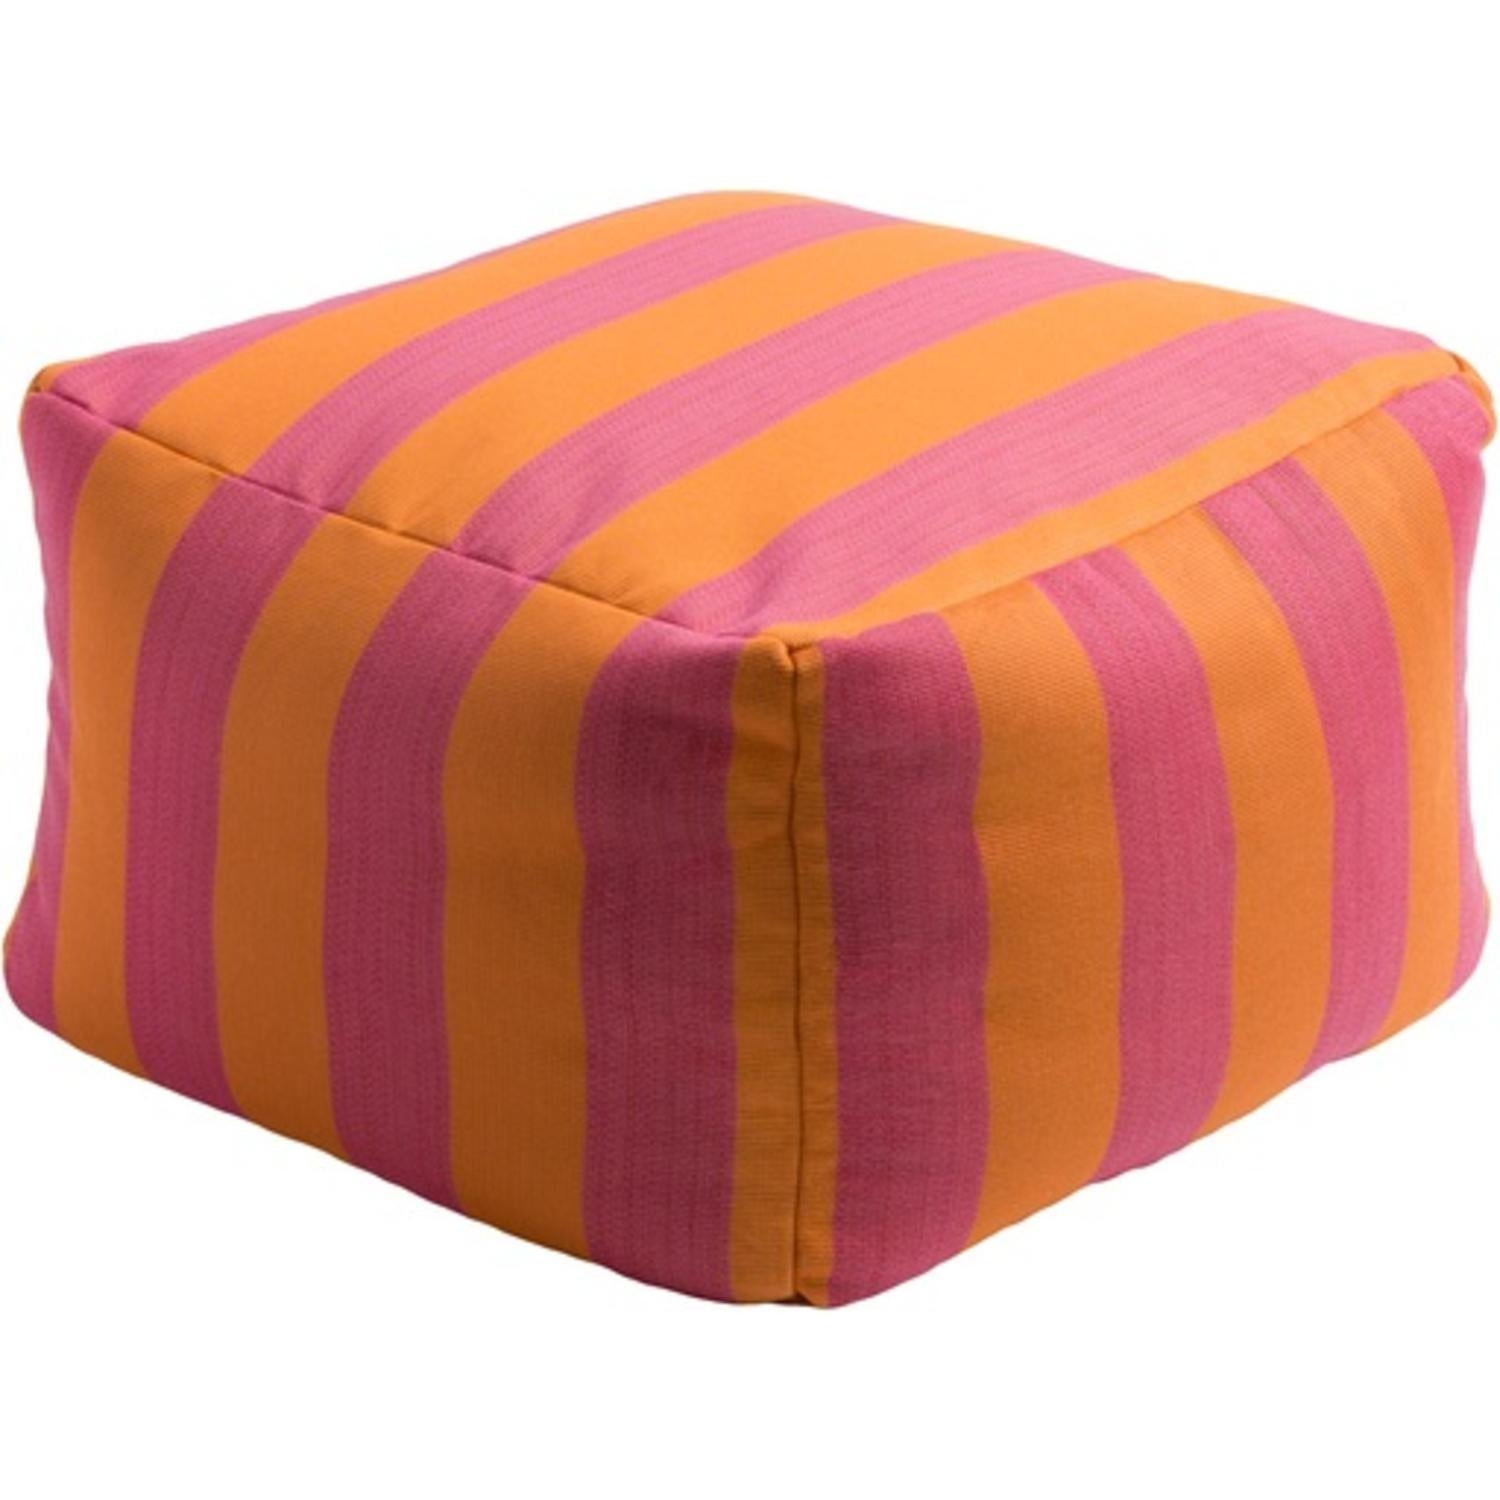 Swell 22 Ginger Orange And Sunset Pink Square Outdoor Patio Pouf Ottoman N A Machost Co Dining Chair Design Ideas Machostcouk